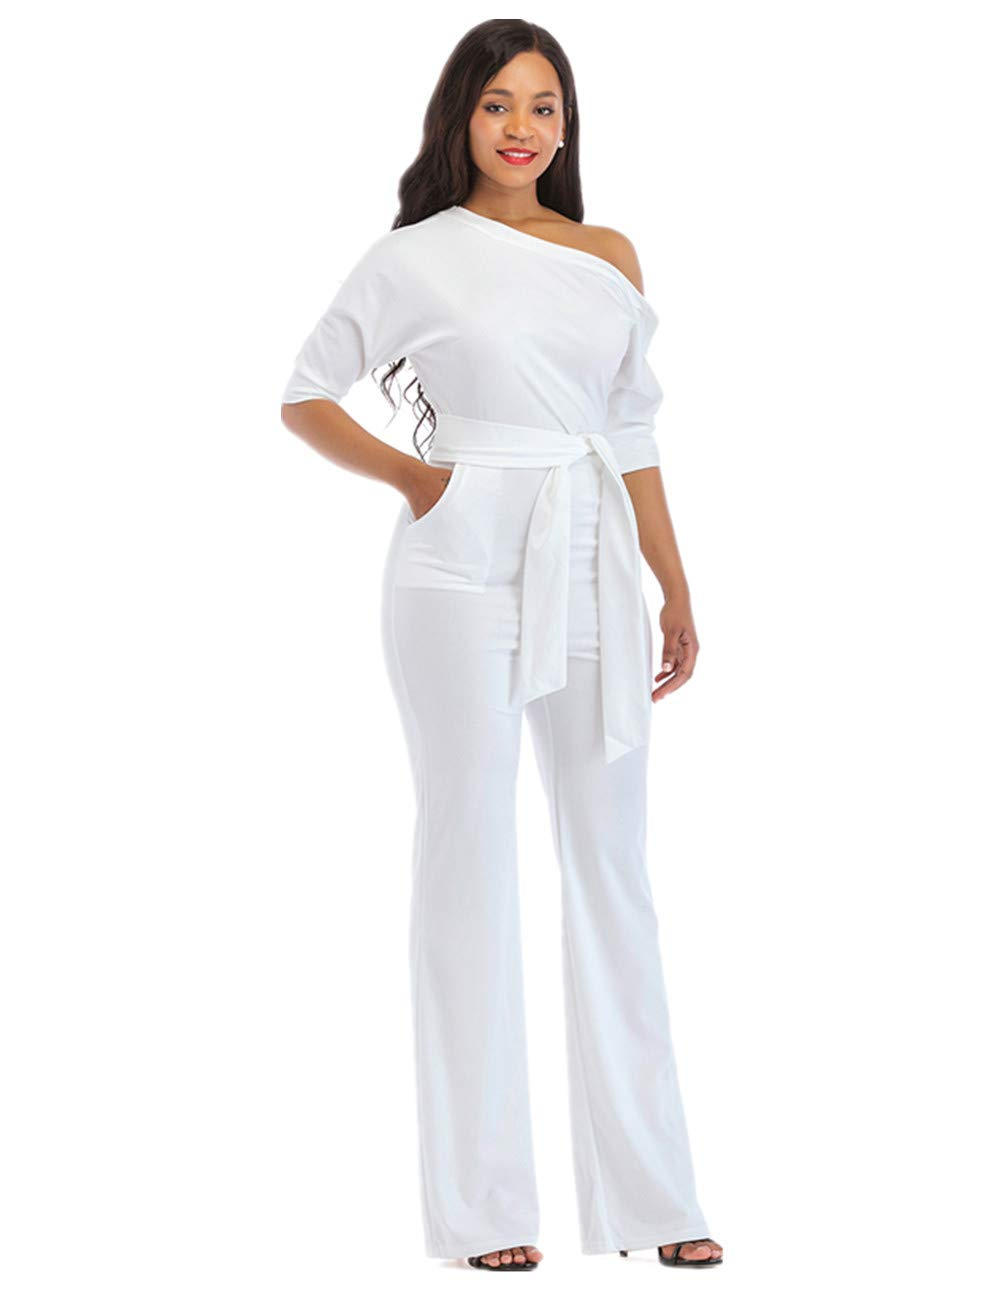 One Shoulder Jumpsuits for Women Elegant Night Sexy Casual Summer Rompers Dress Wide Leg Long Pants Plus Size White XXL by PINLI